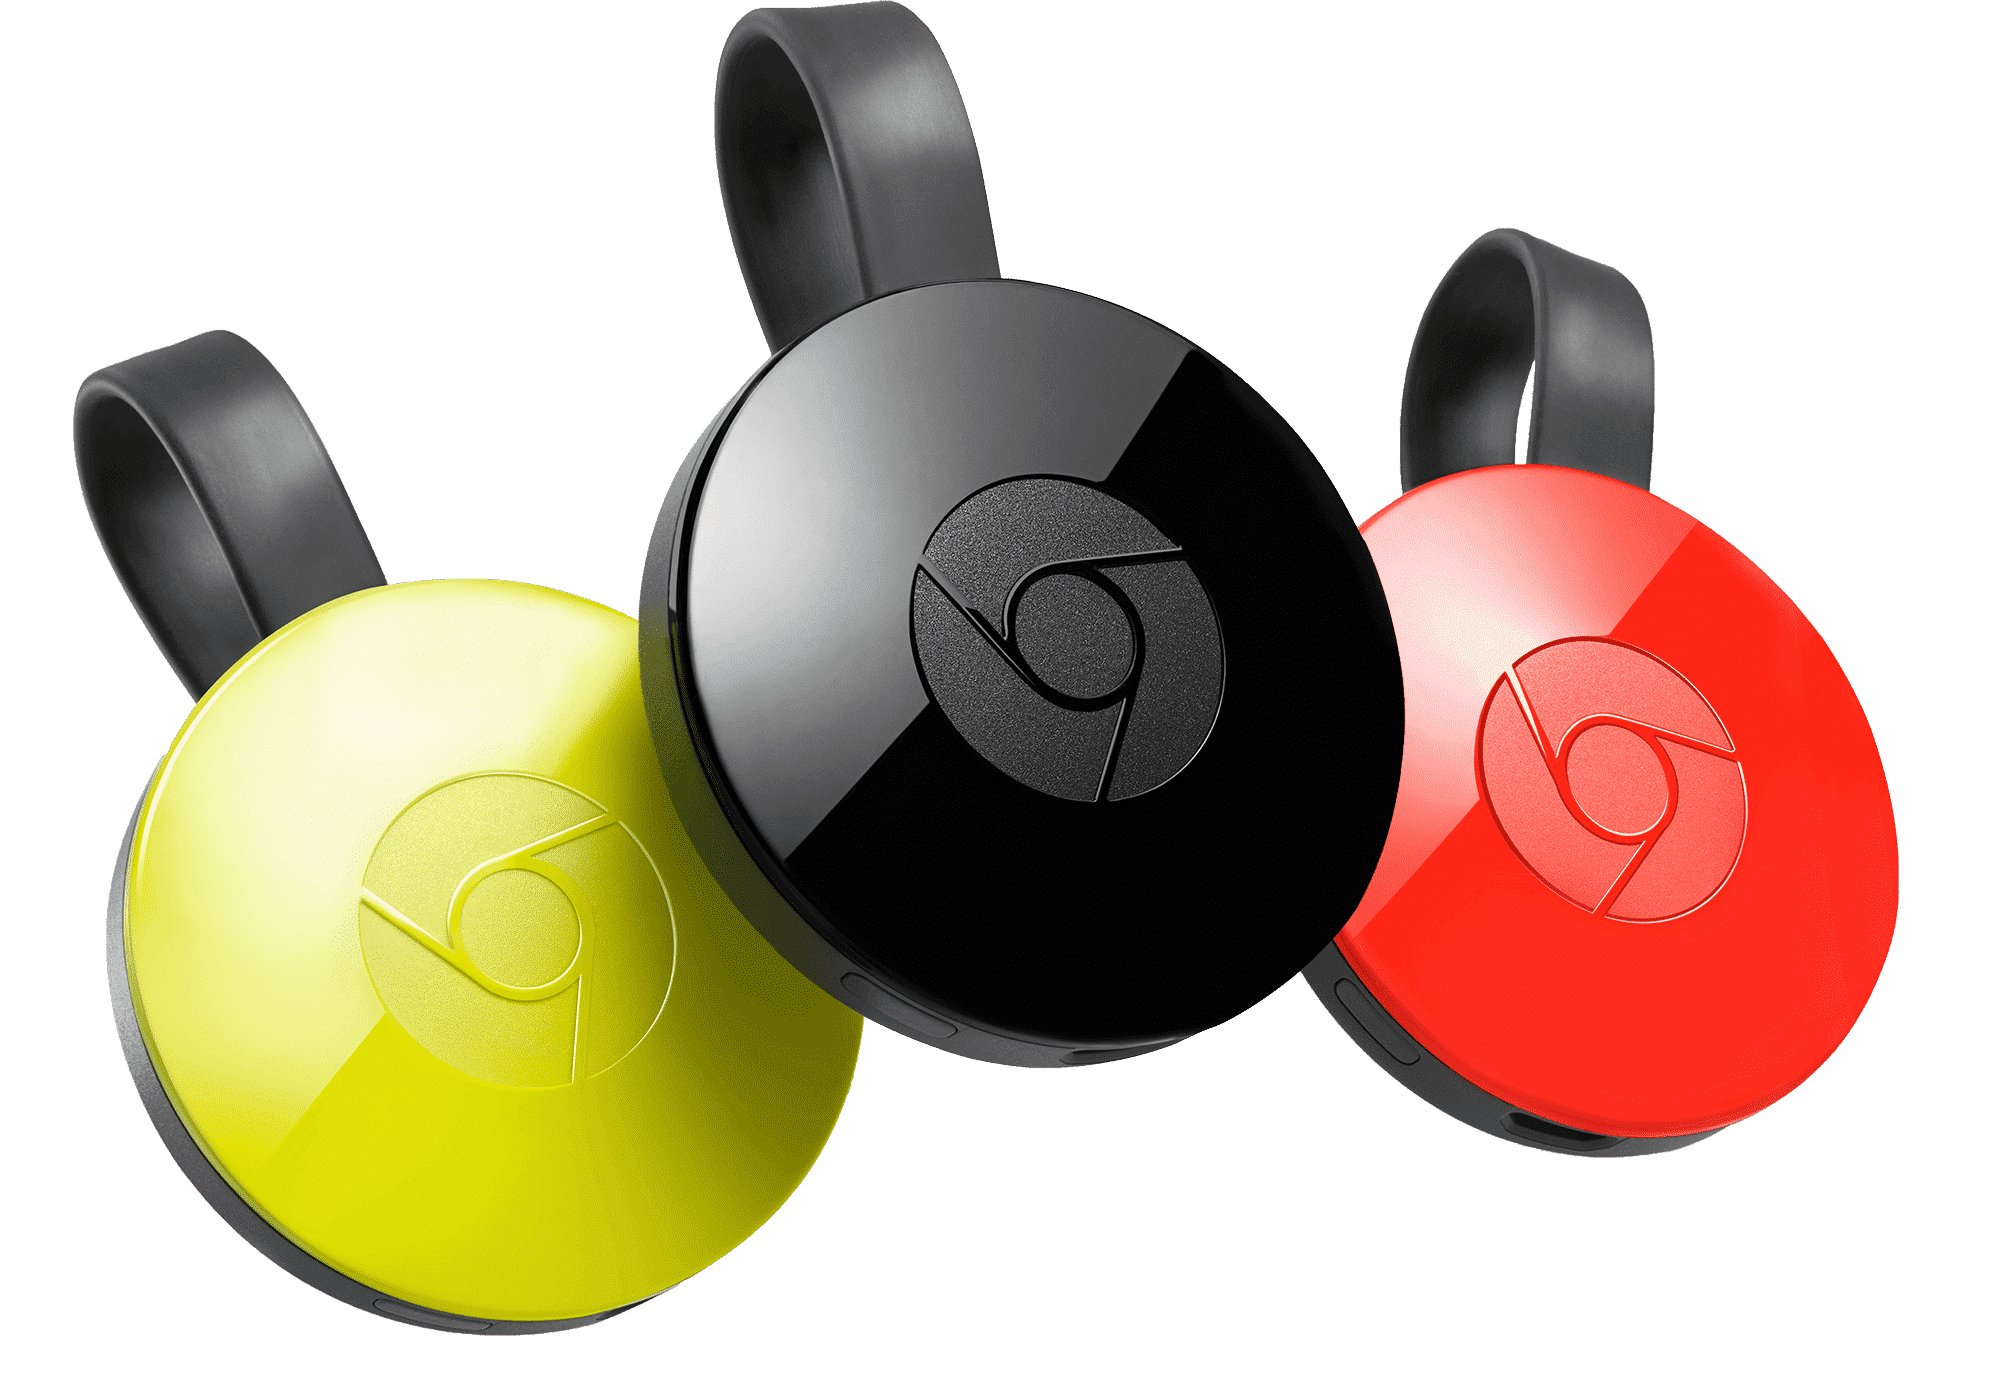 3 couleurs du chromecast